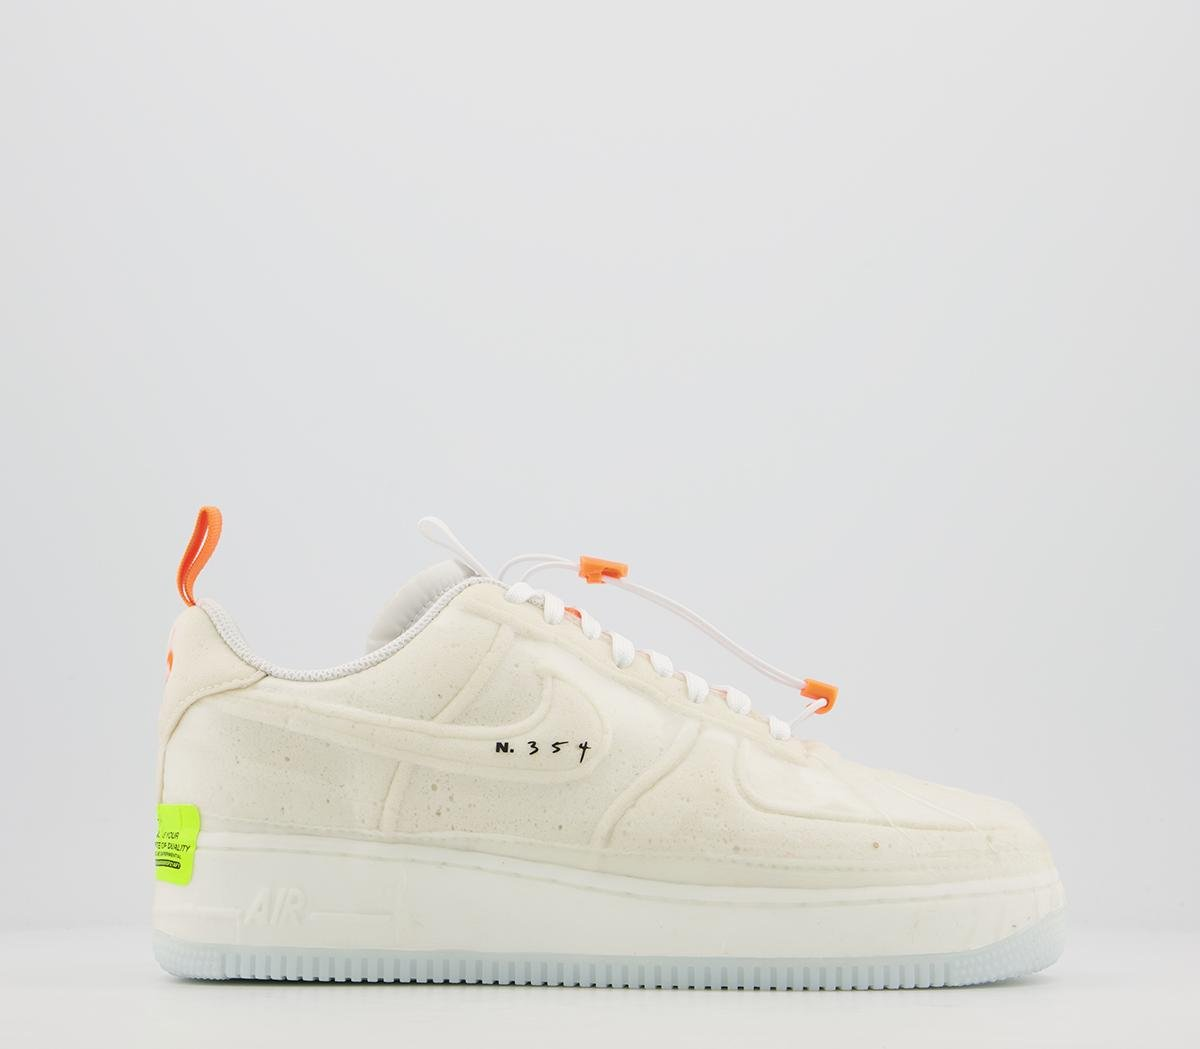 Most sizes restocked: Nike Air Force 1